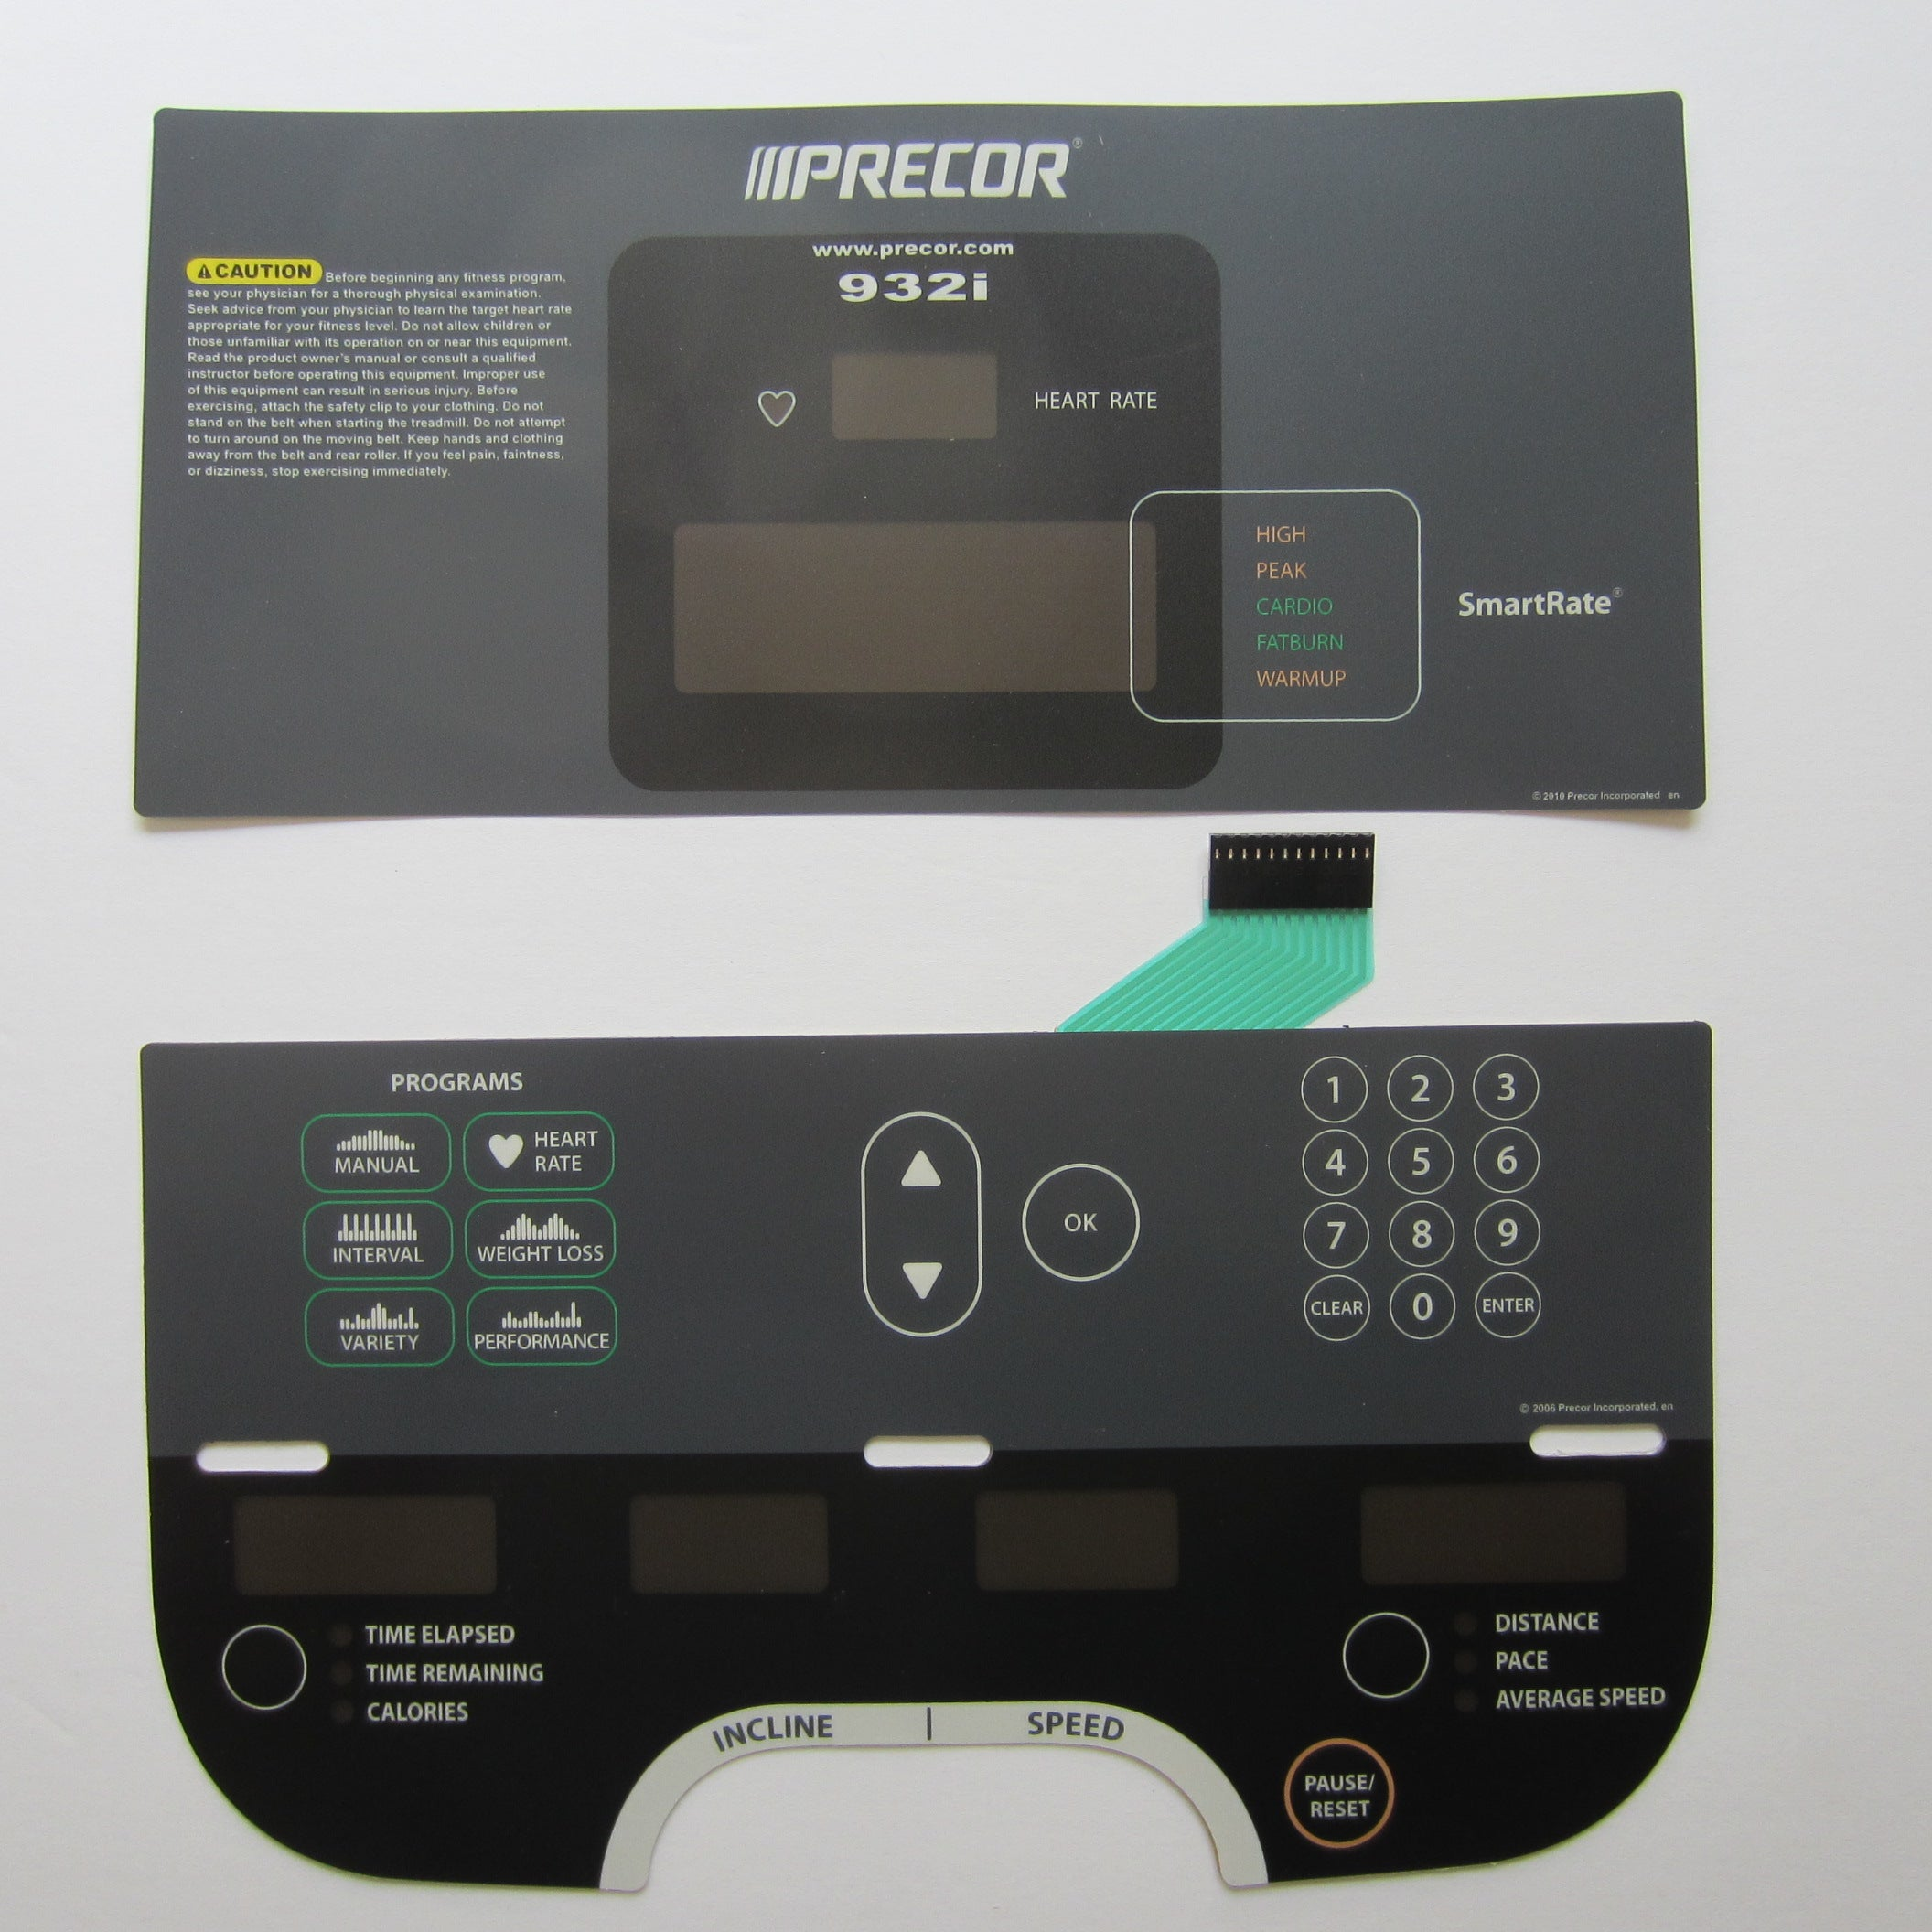 Precor 932i Keypad Overlay Set